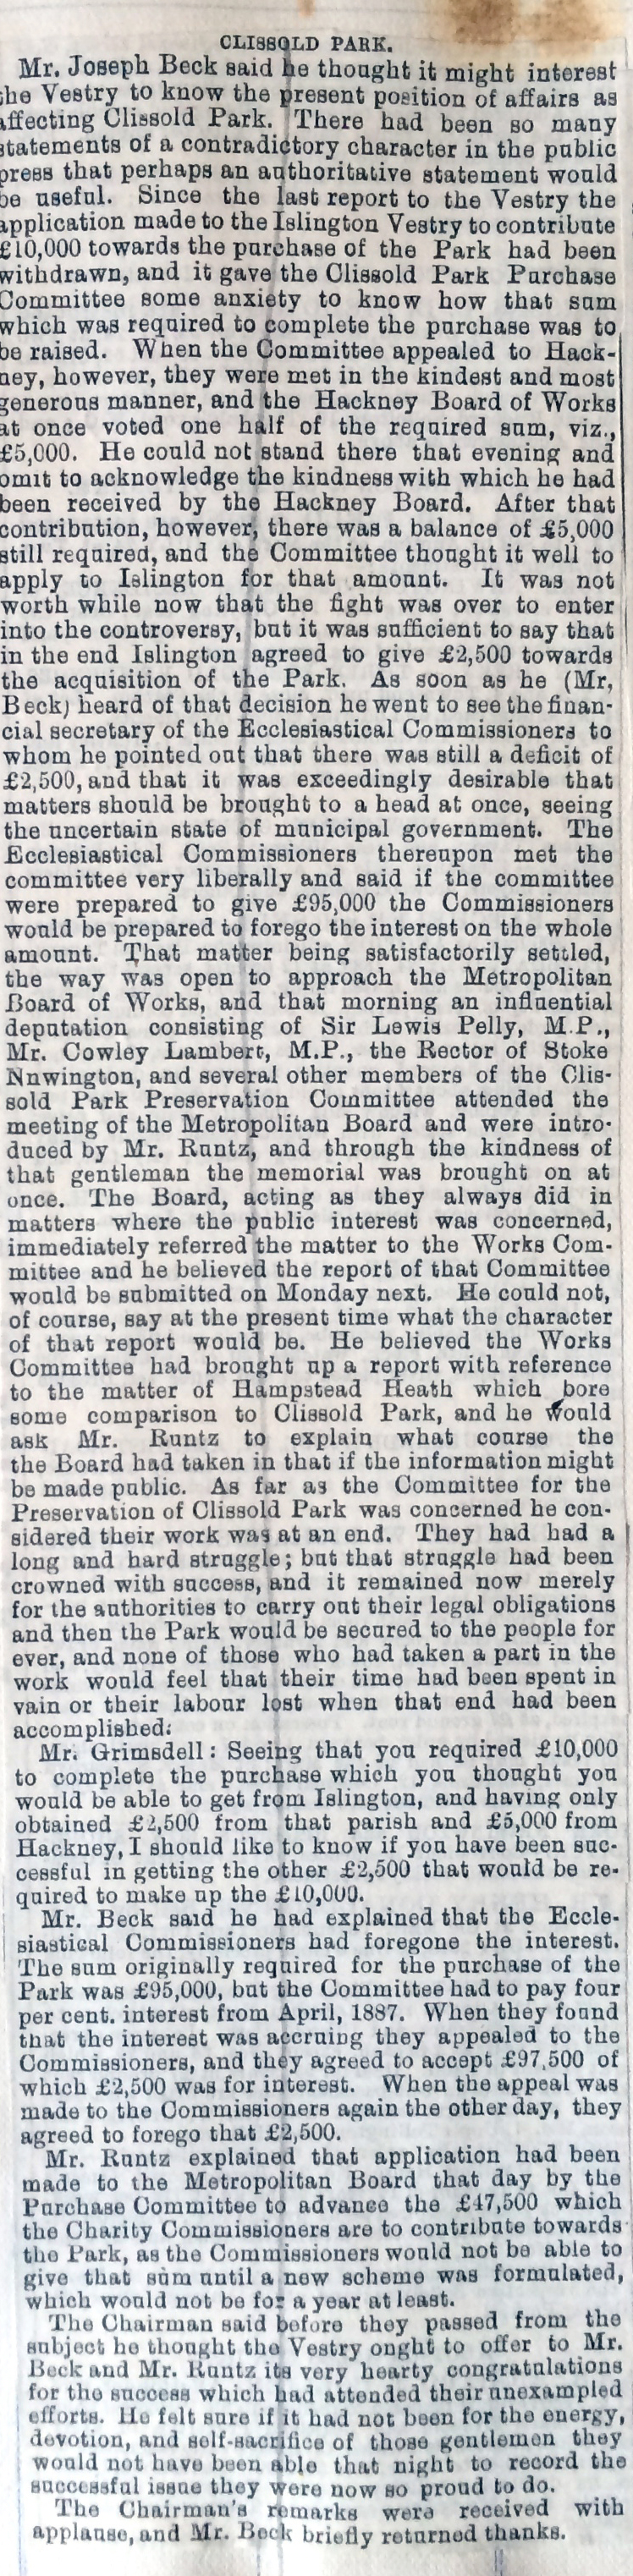 July_1888 NEWS CLIPPING 1